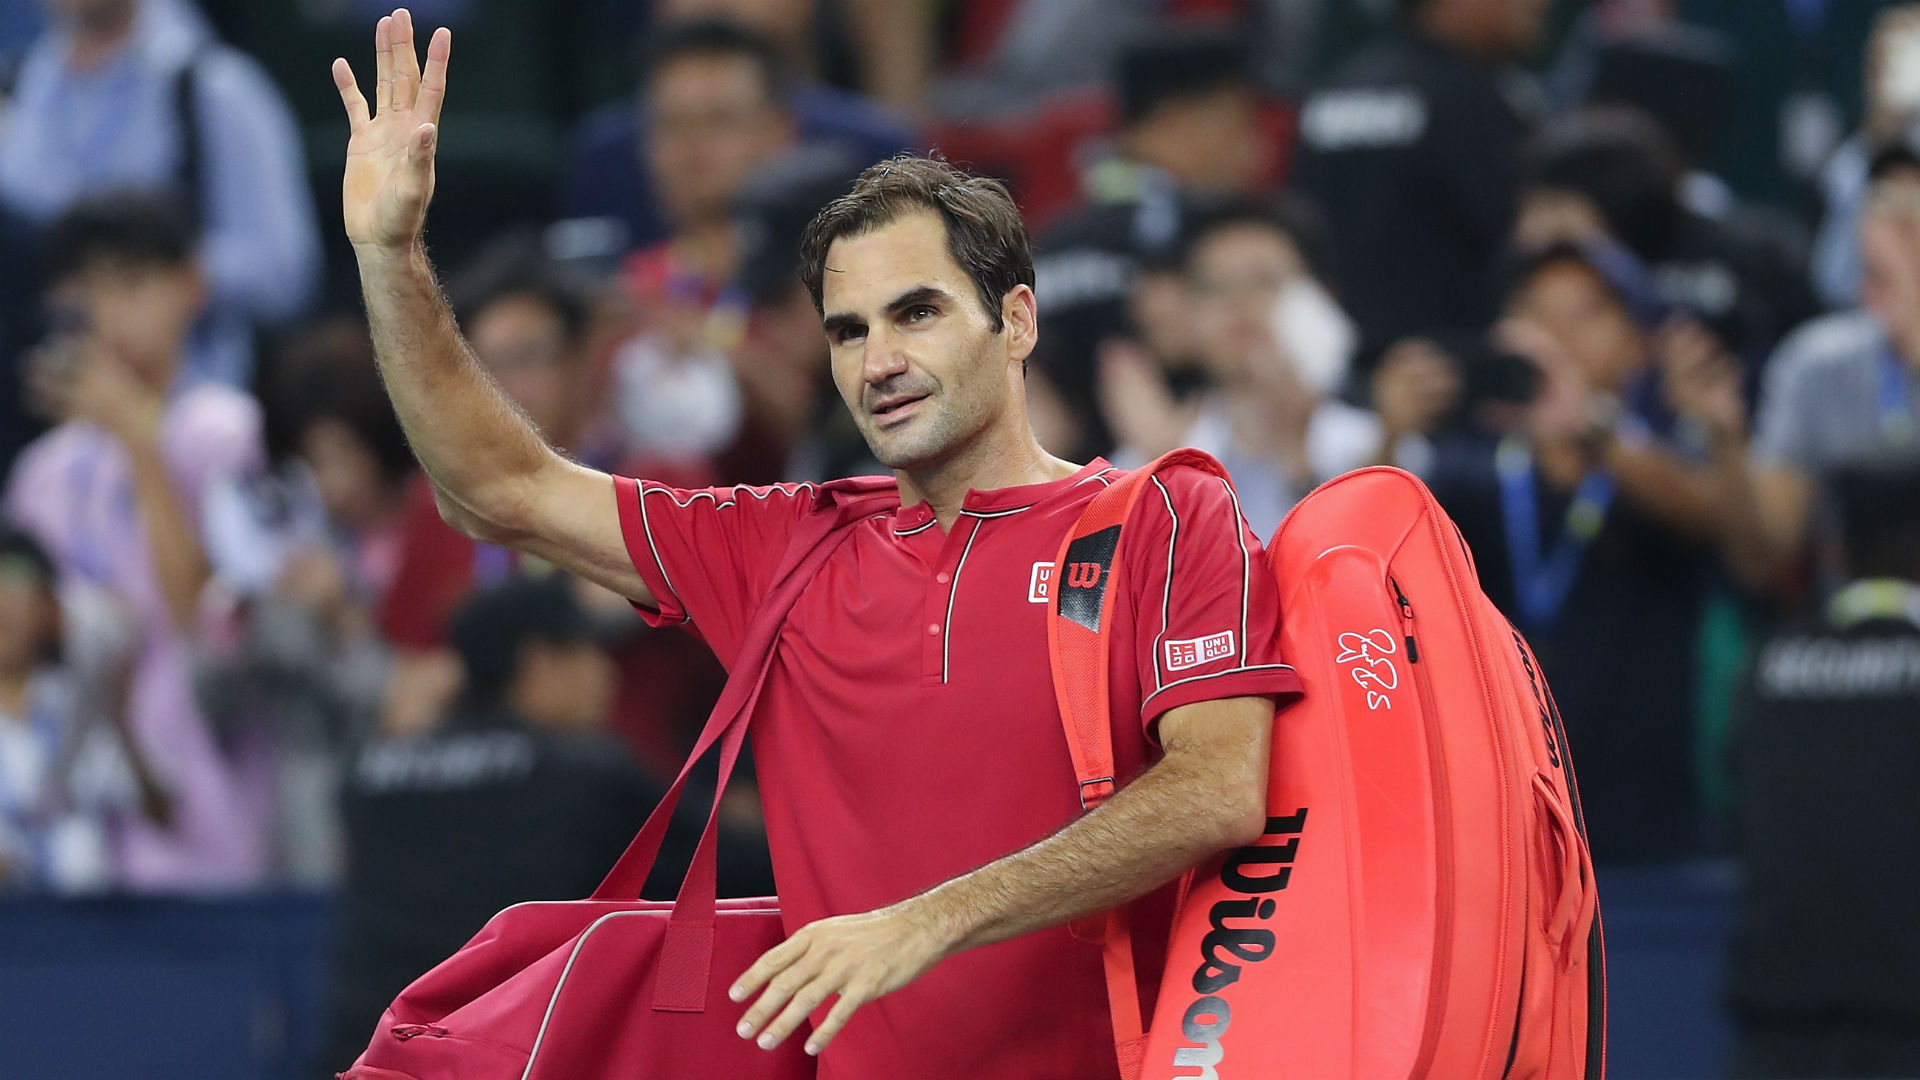 Fiery Federer impressed by cool, calm Zverev